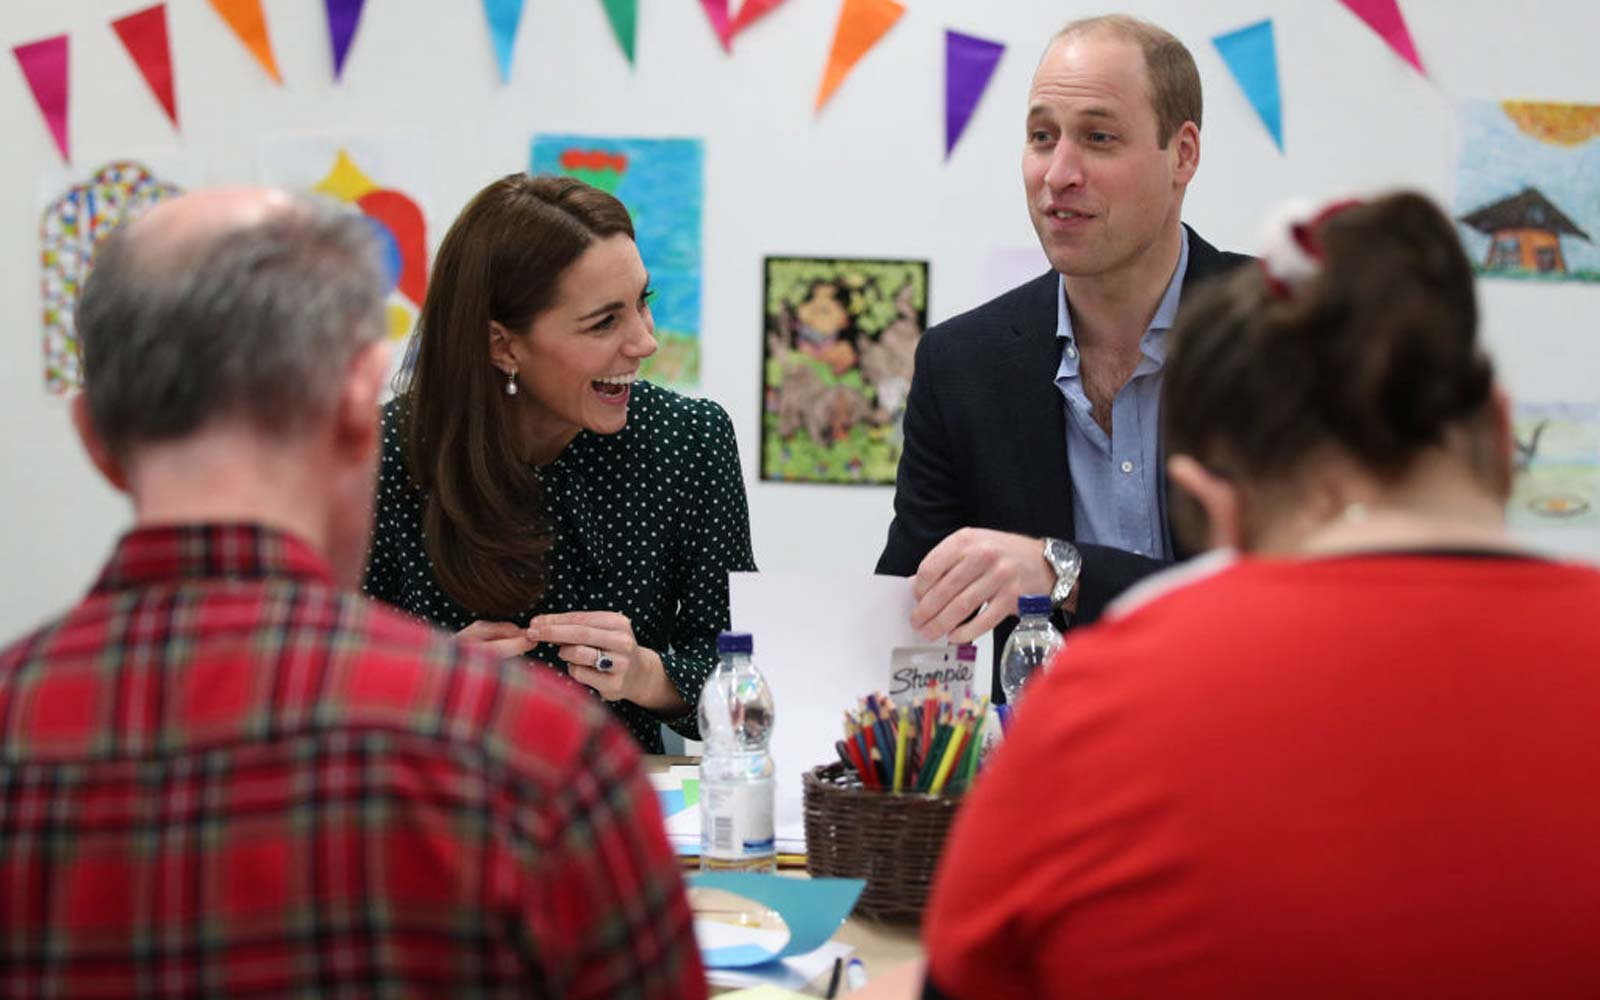 Catherine, Duchess of Cambridge and Prince William, Duke of Cambridge take part in an art and craft session